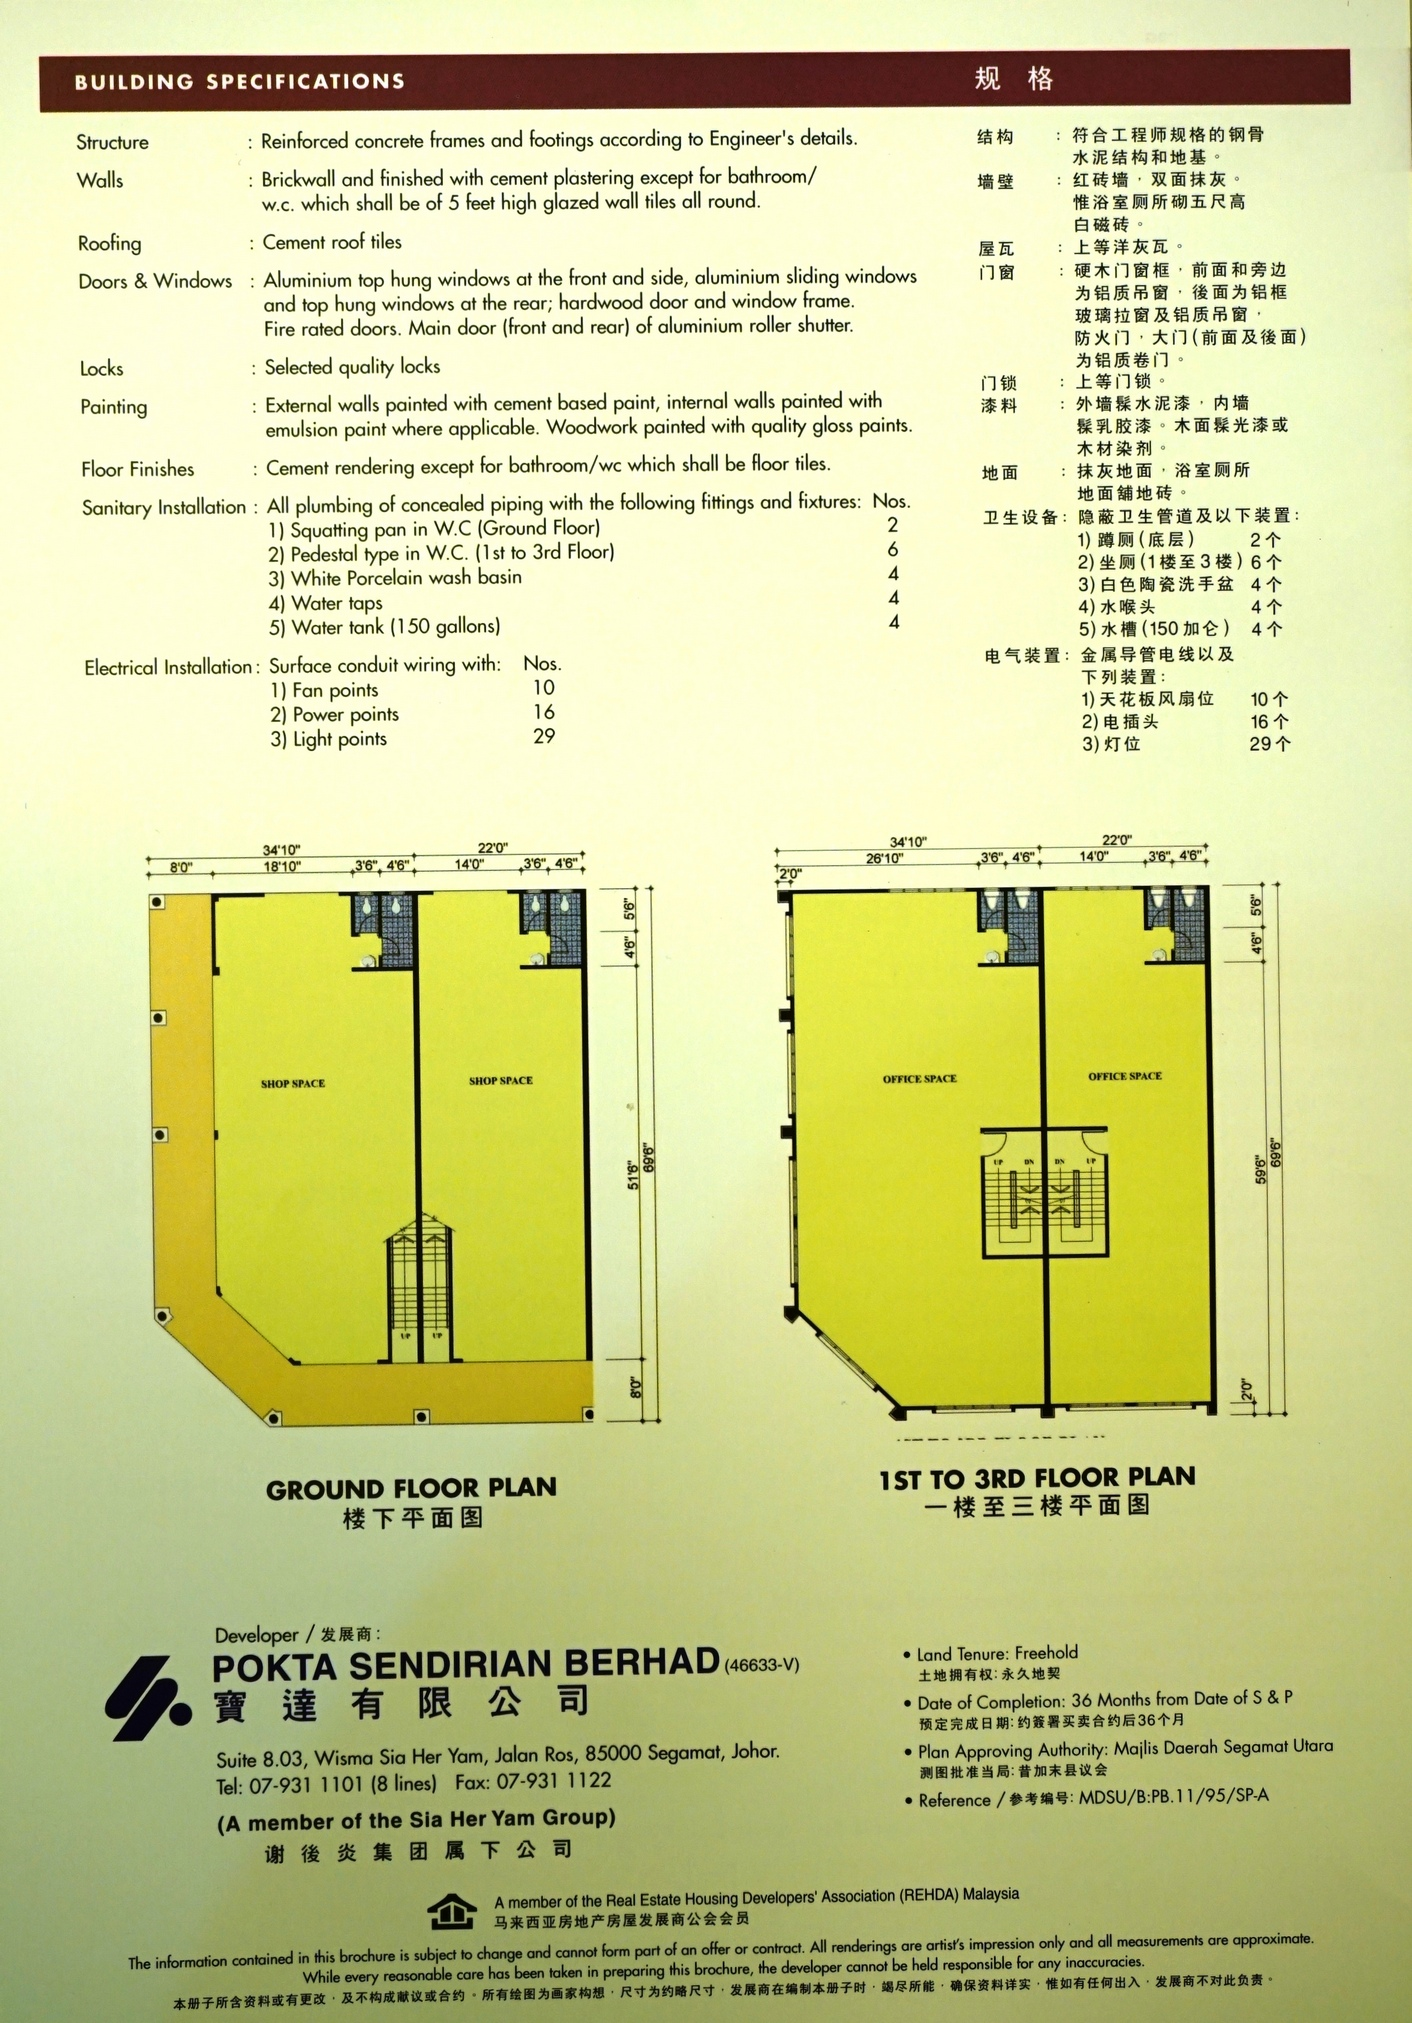 Yam Wiring Diagram Schematics Yamaha Outboard Pdf Sia Her Click The Image To Download Brochure